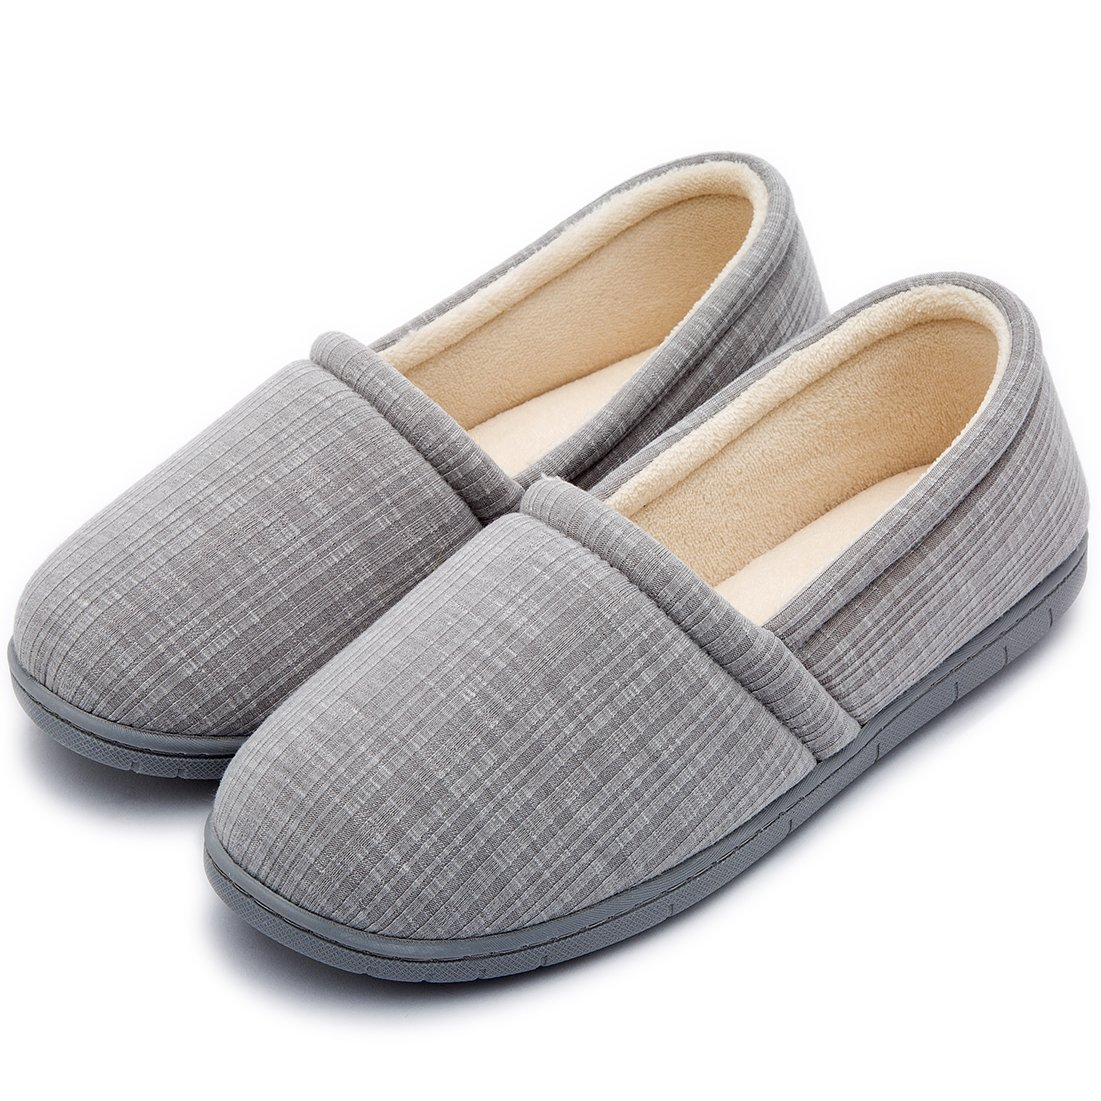 Cozy Niche Women's Knitted Vertical Stripe Shoes, Spring Summer Memory Foam House Slippers (7-8 B(M) US, Gray)